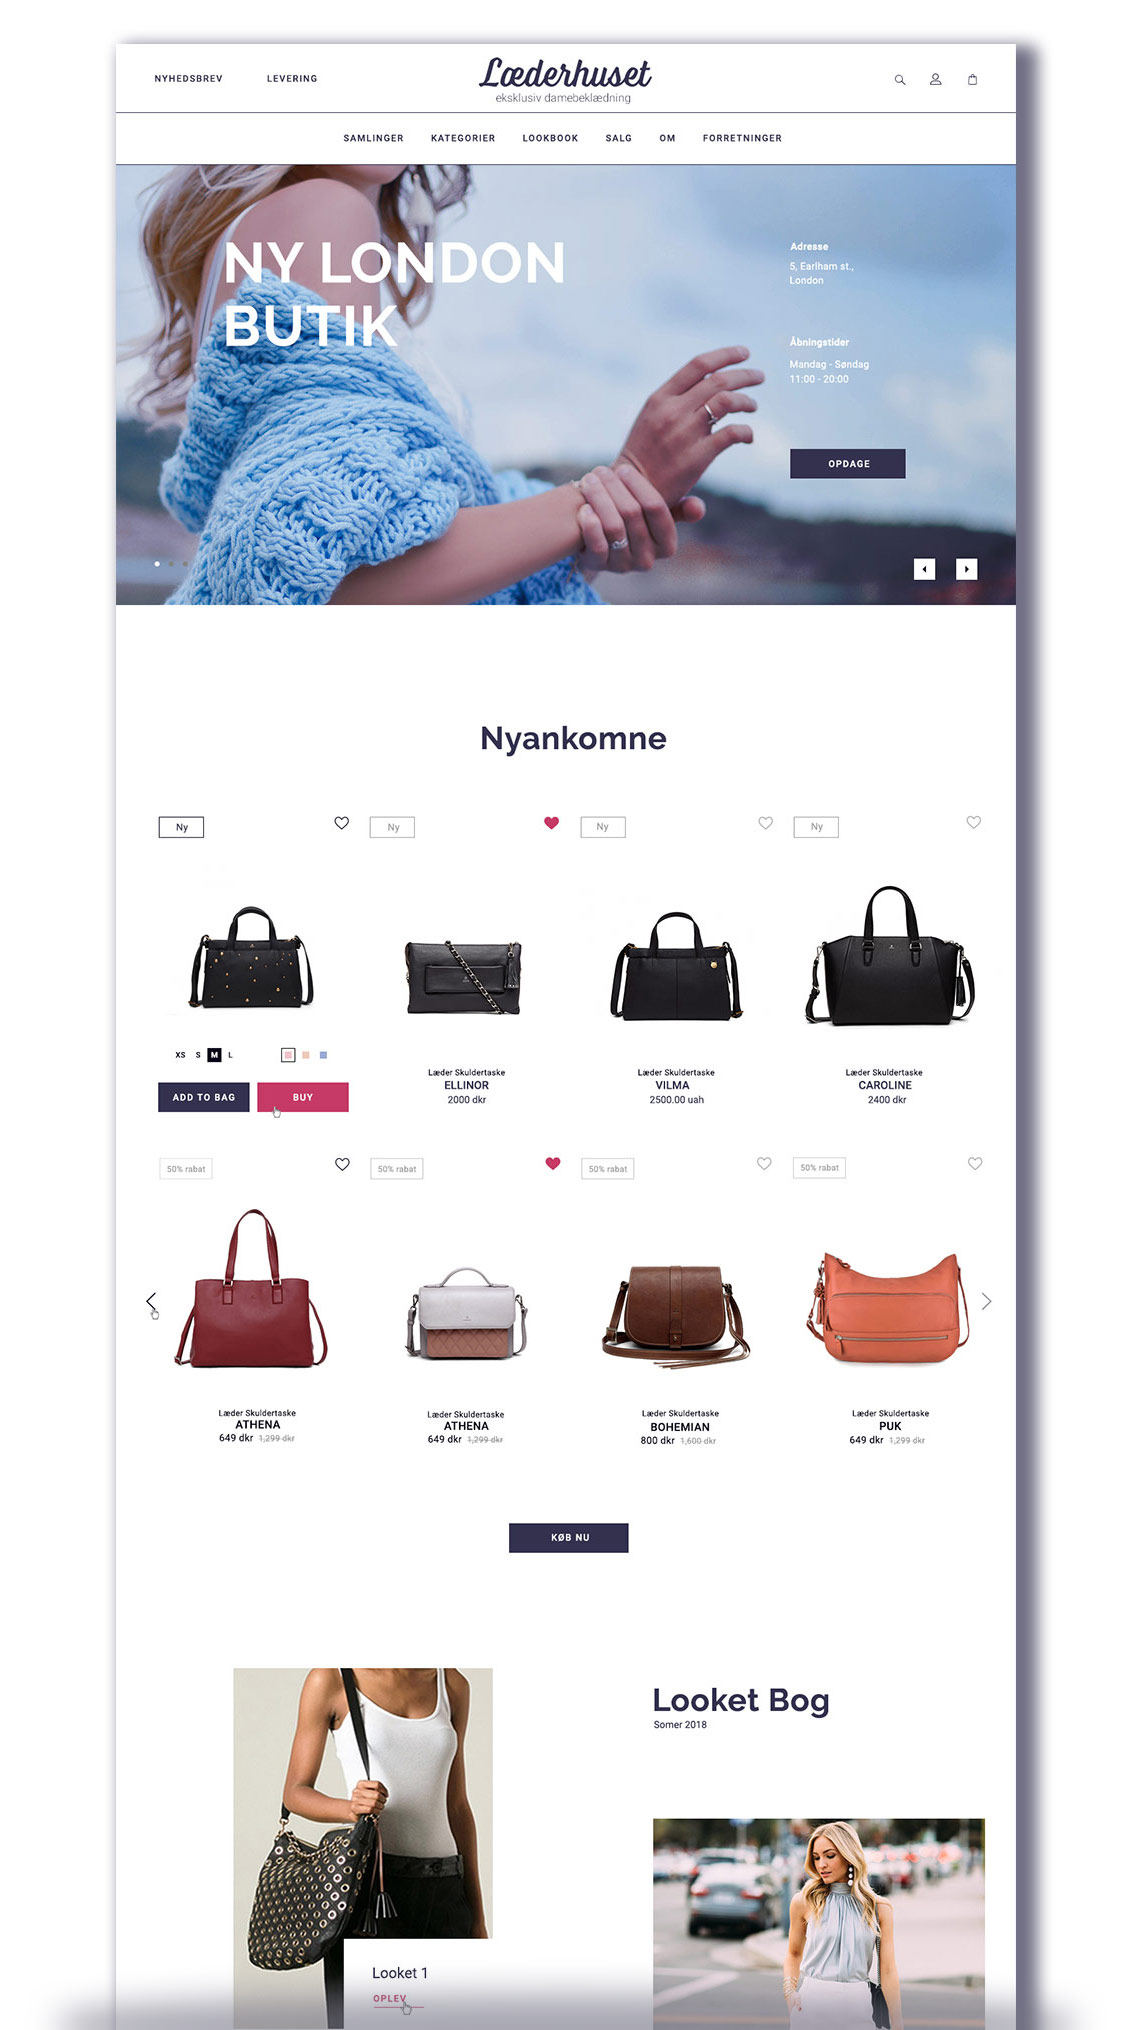 Læderhuset - Web Design Home page (Upper half) by THAT Branding Company - Creative Design and Branding Agency in Newcastle